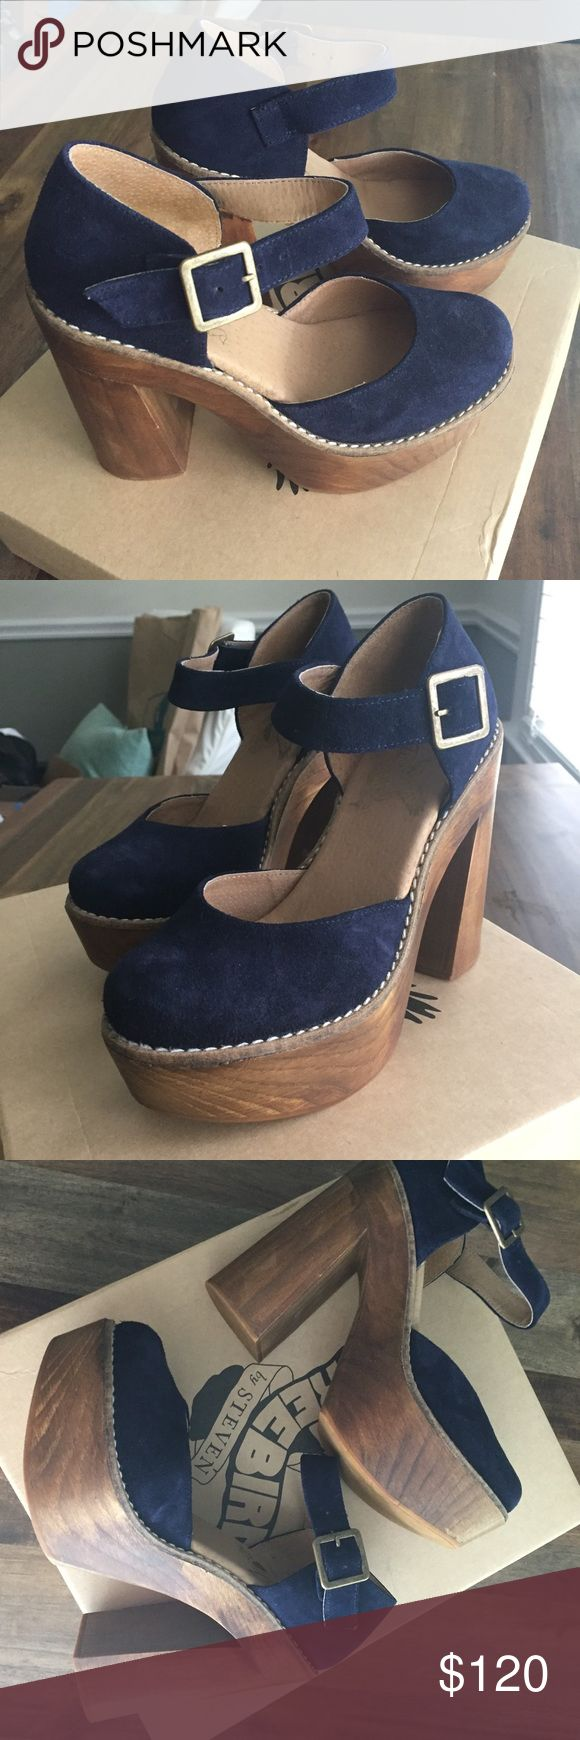 Selling this NIB Blue Suede Platform Mary Janes on Poshmark! My username is: ohight1. #shopmycloset #poshmark #fashion #shopping #style #forsale #Steven By Steve Madden #Shoes